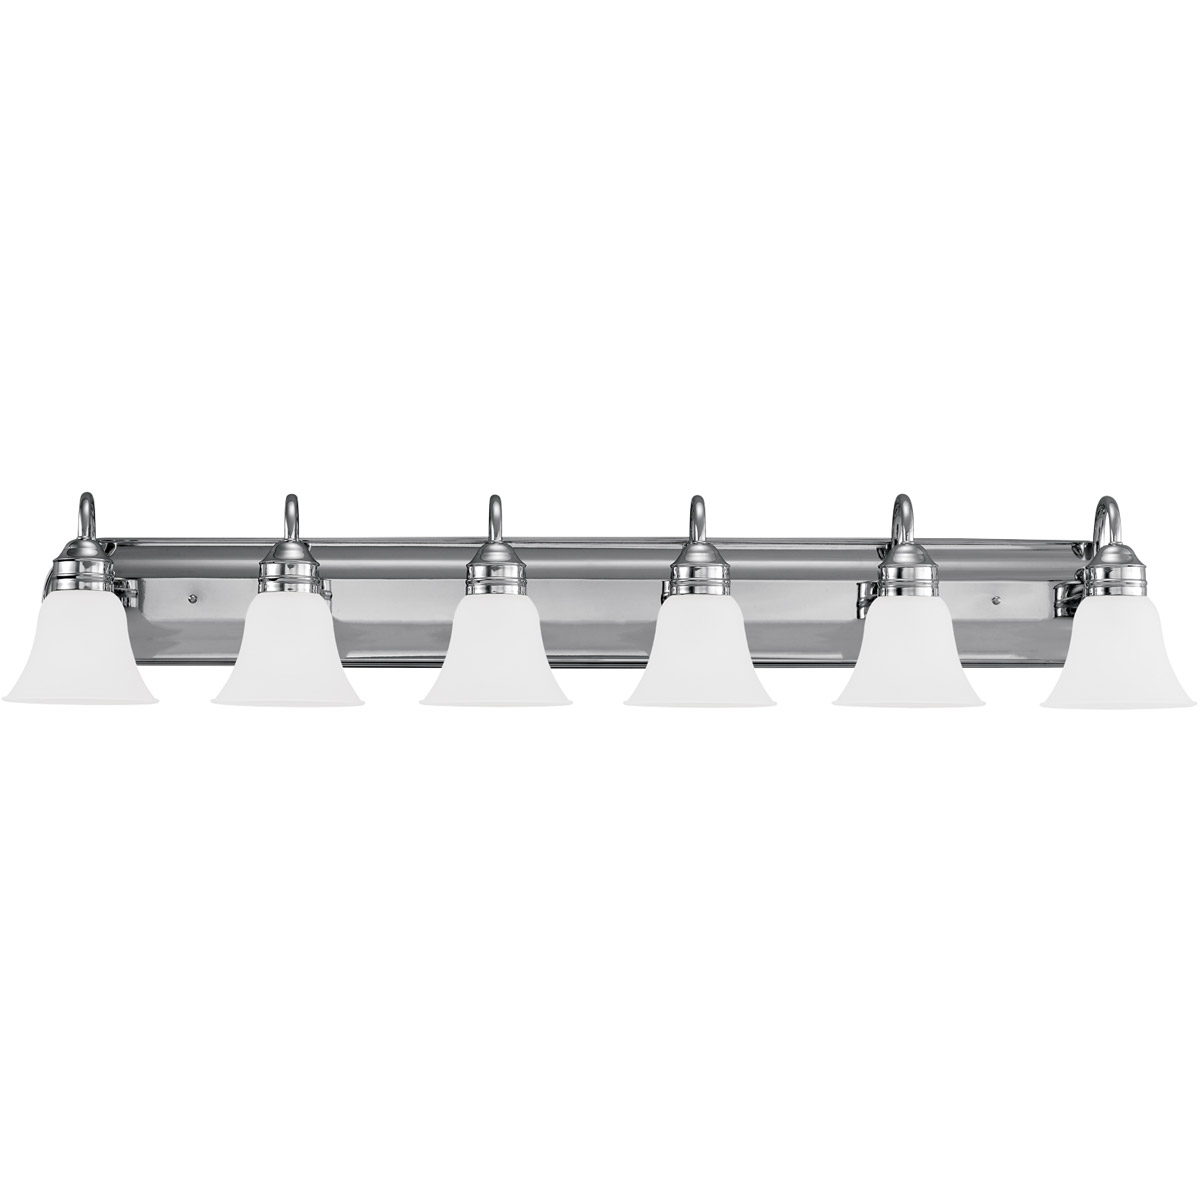 Sea Gull Lighting Gladstone 6 Light Bath Vanity in Chrome 44855-05